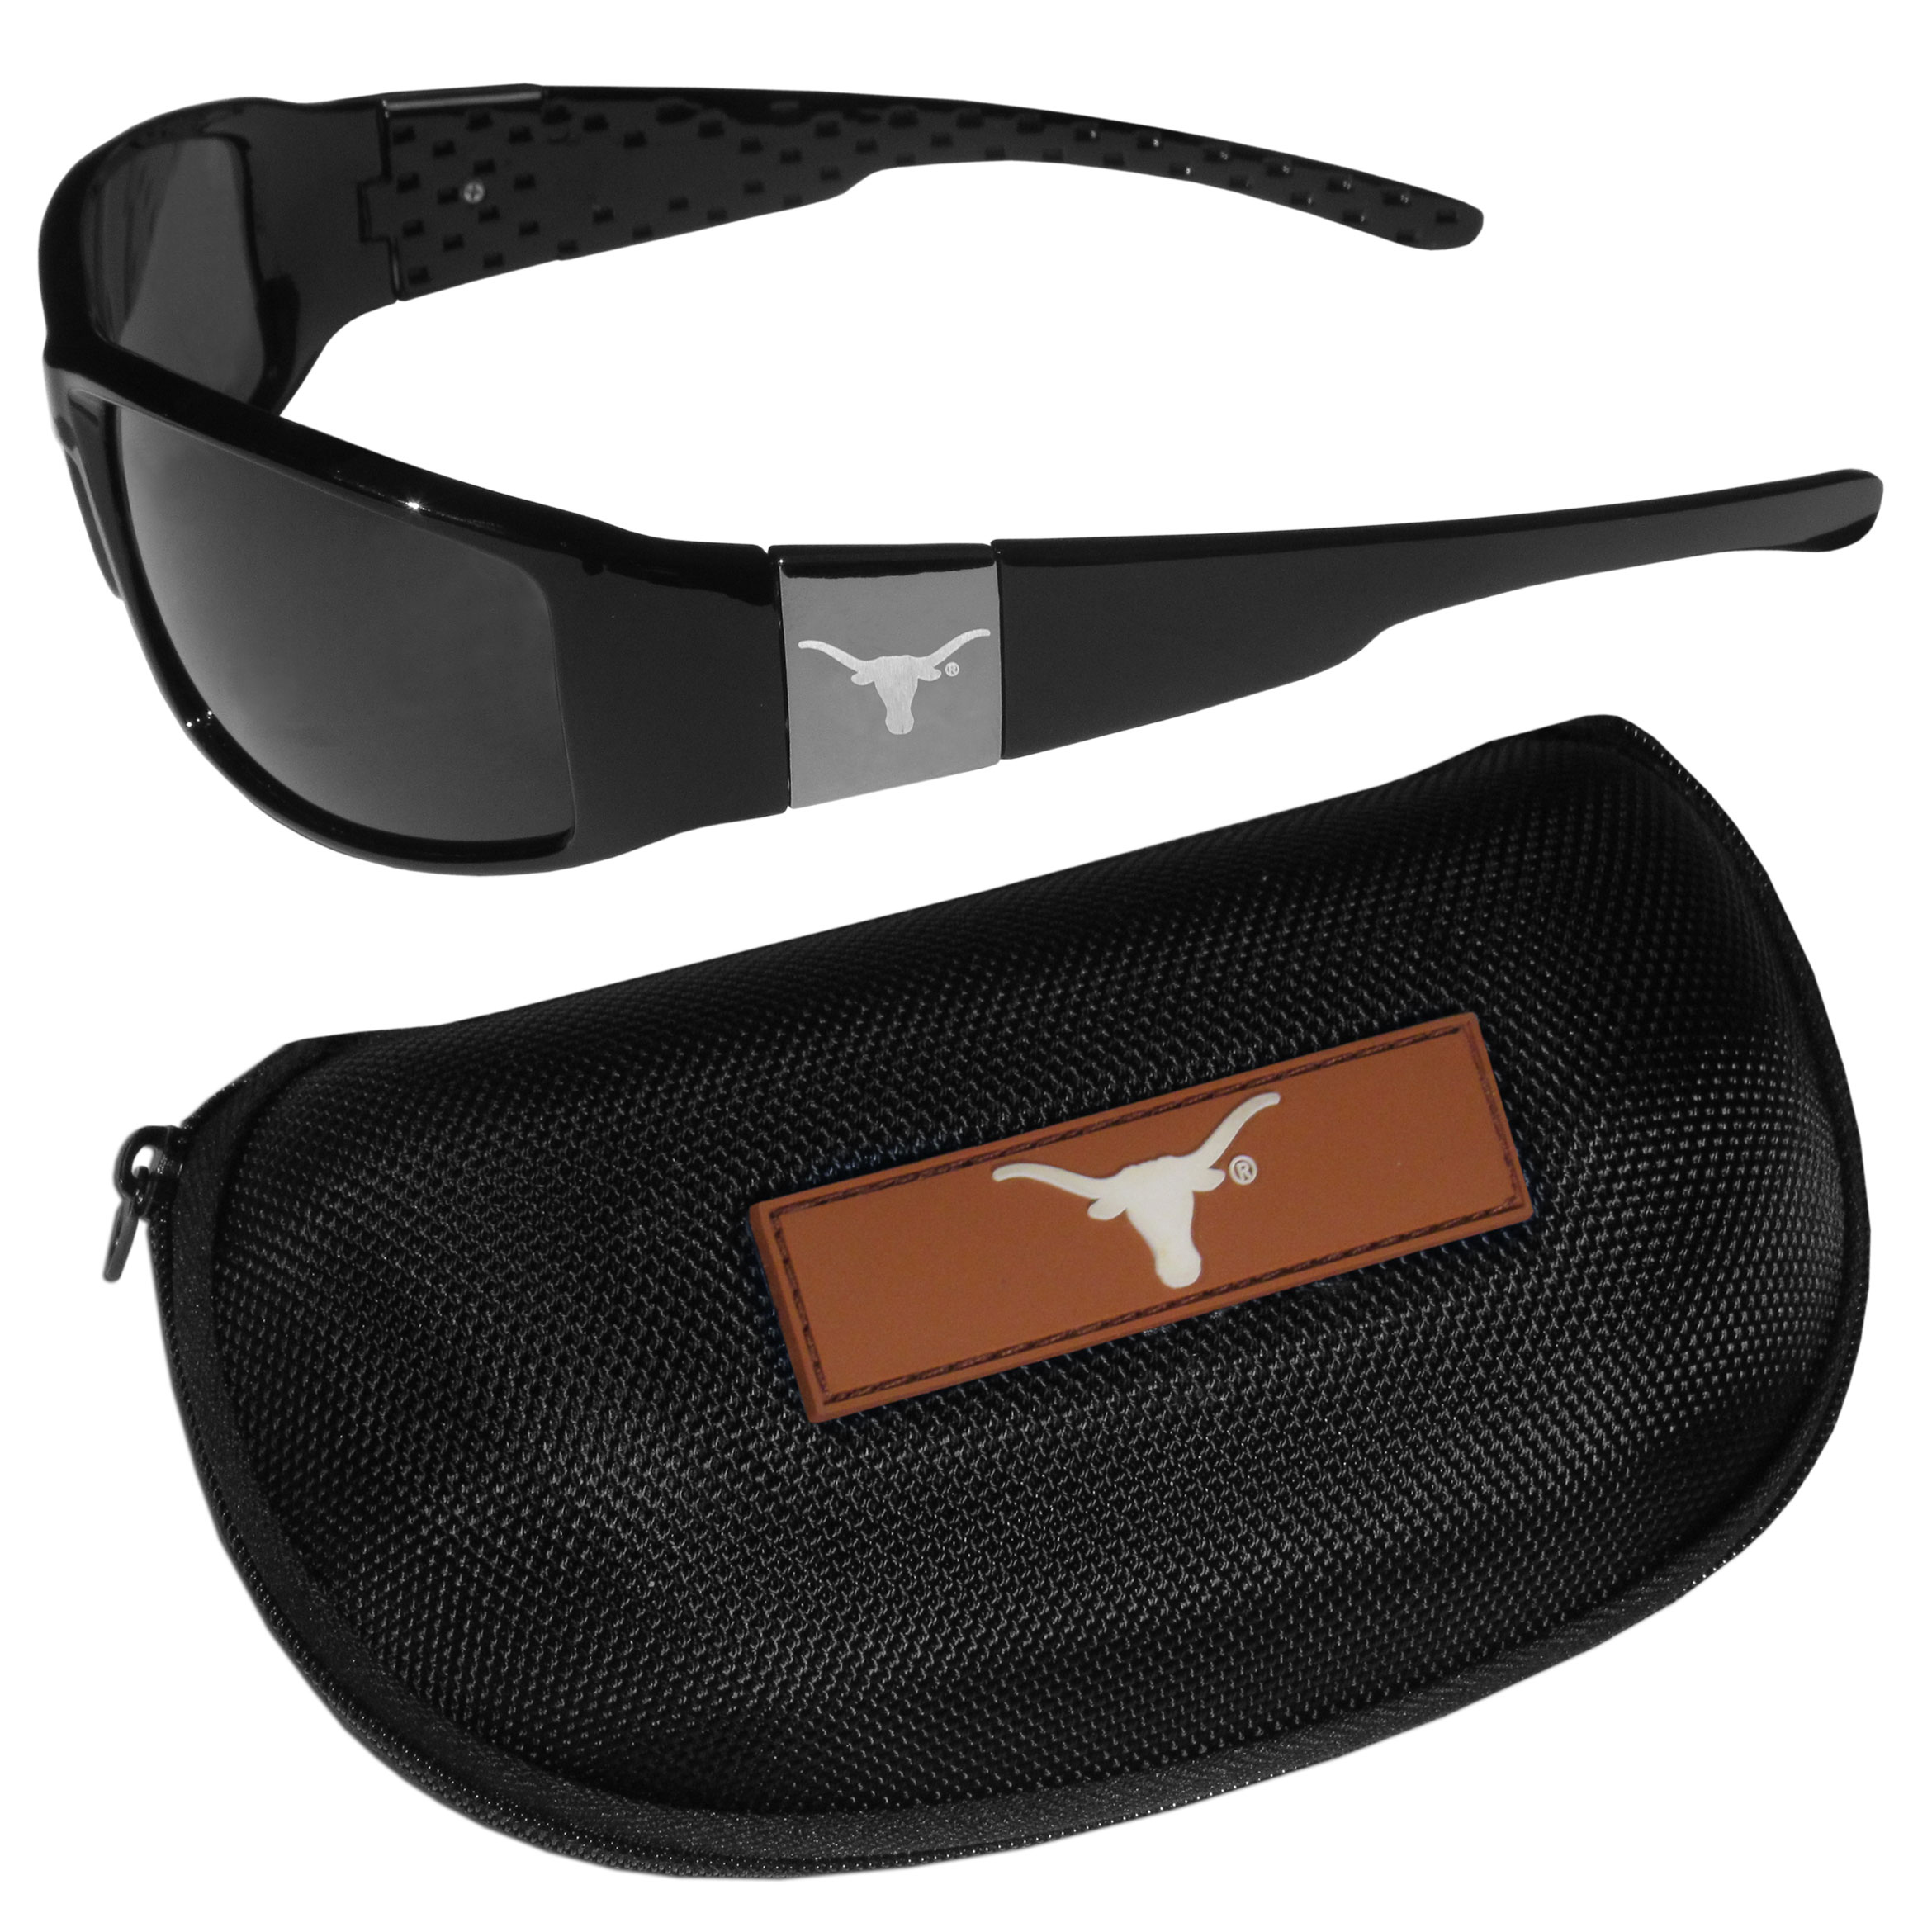 Texas Longhorns Chrome Wrap Sunglasses and Zippered Carrying Case - These designer inspired frames have a sleek look in all black with high-polish chrome Texas Longhorns shields on each arm with an etched logo. The shades are perfect any outdoor activity like; golfing, driving, hiking, fishing or cheering on the team at a tailgating event or an at home game day BBQ with a lens rating of 100% UVA/UVB for maximum UV protection. The high-quality frames are as durable as they are fashionable and with their classic look they are perfect fan accessory that can be worn everyday for every occasion. The shades come with a zippered hard shell case to keep your sunglasses safe.